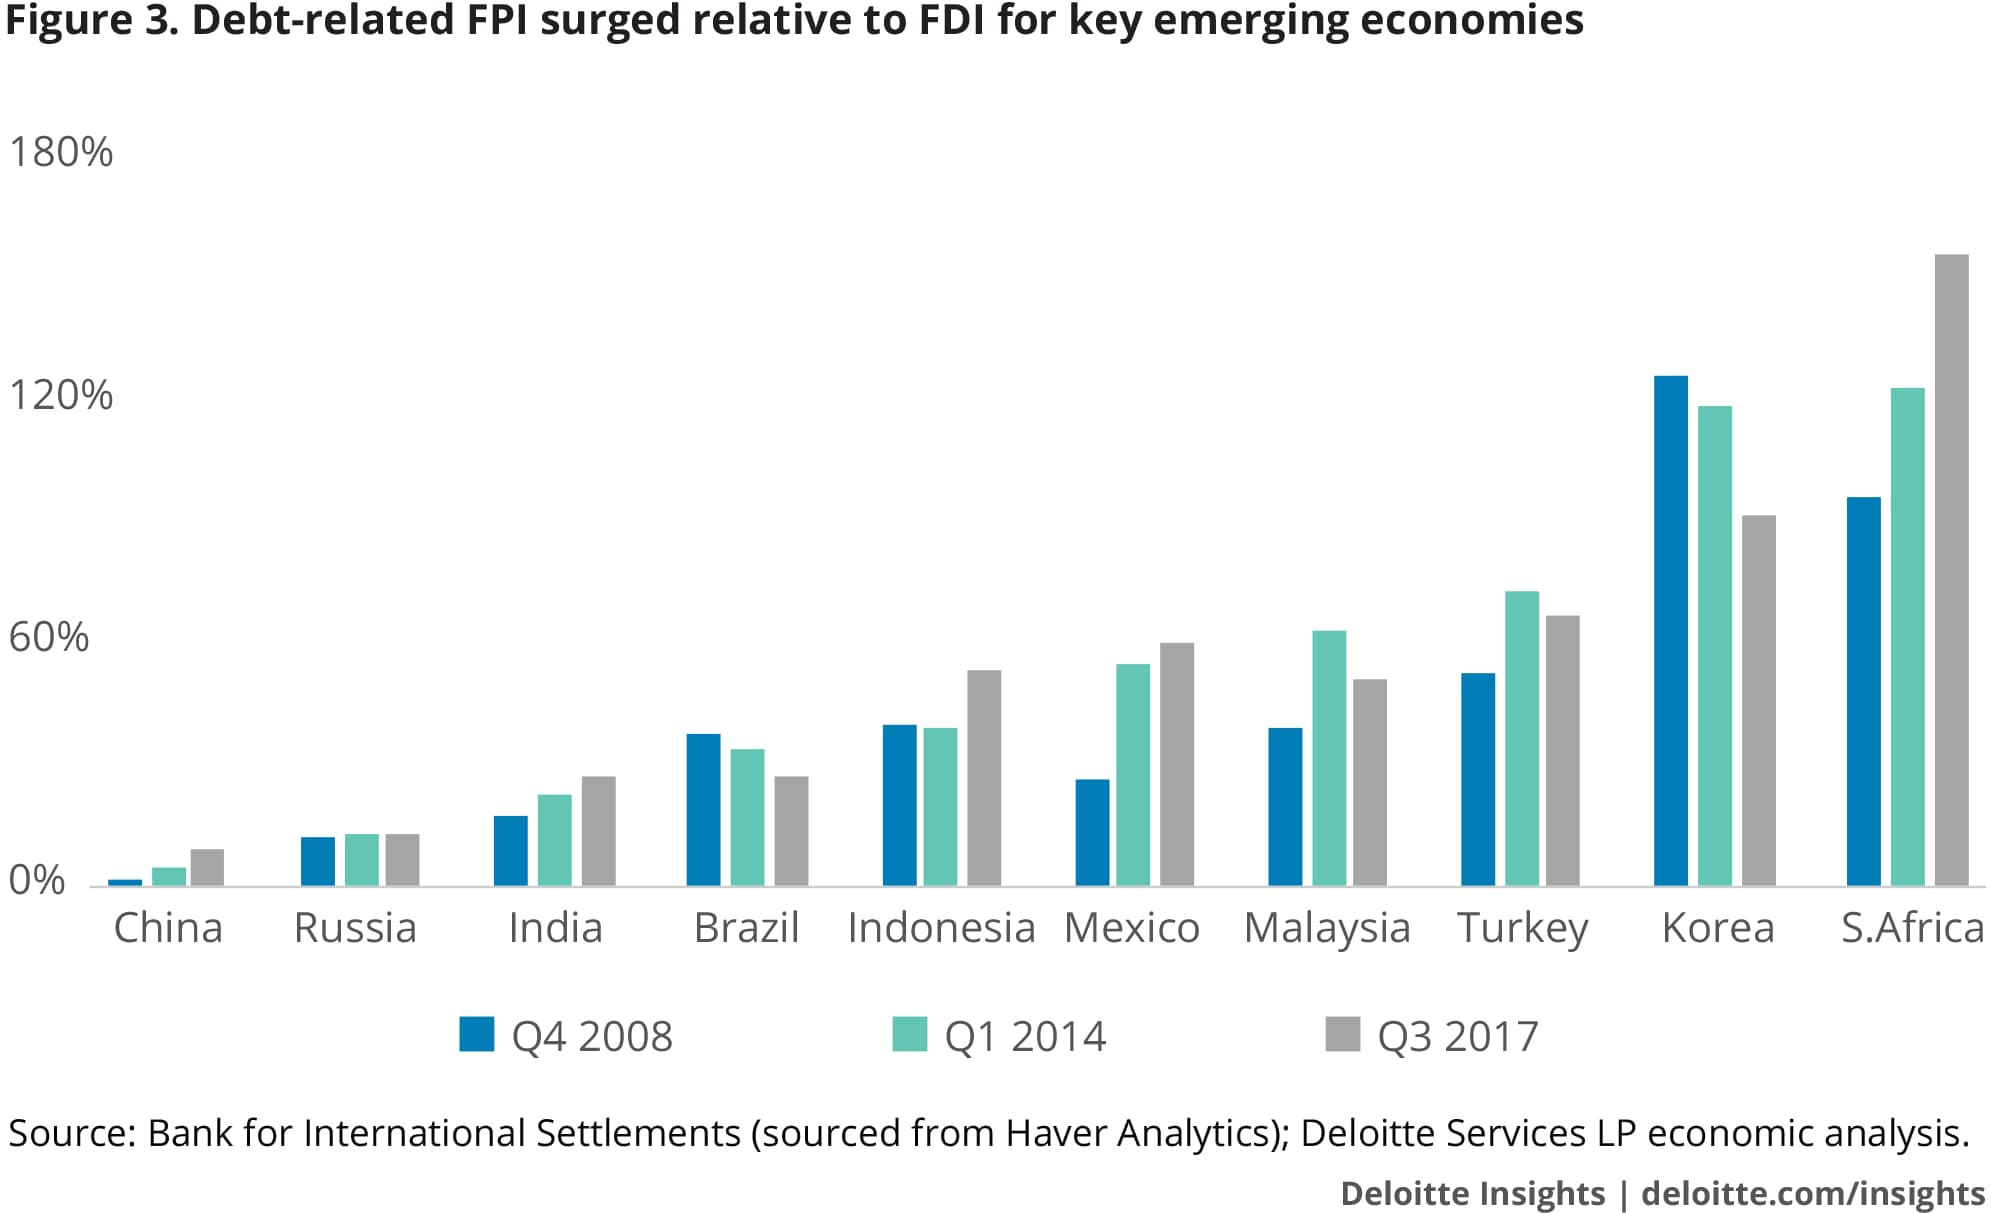 Debt-related FPI surged relative to FDI for key emerging economies